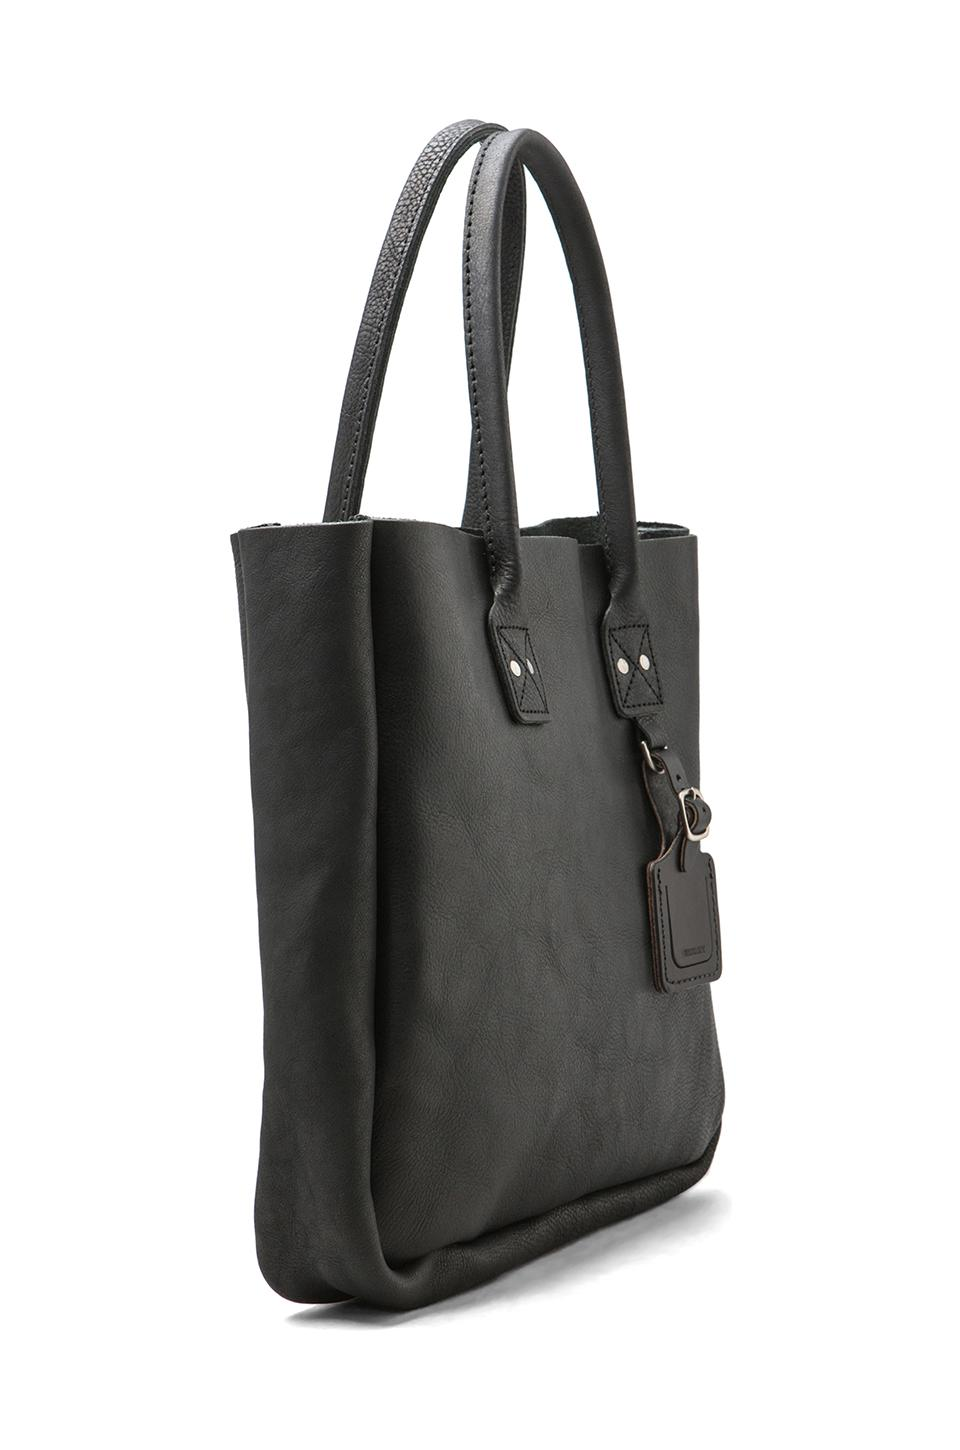 Billykirk No. 235 Leather Tote in Black